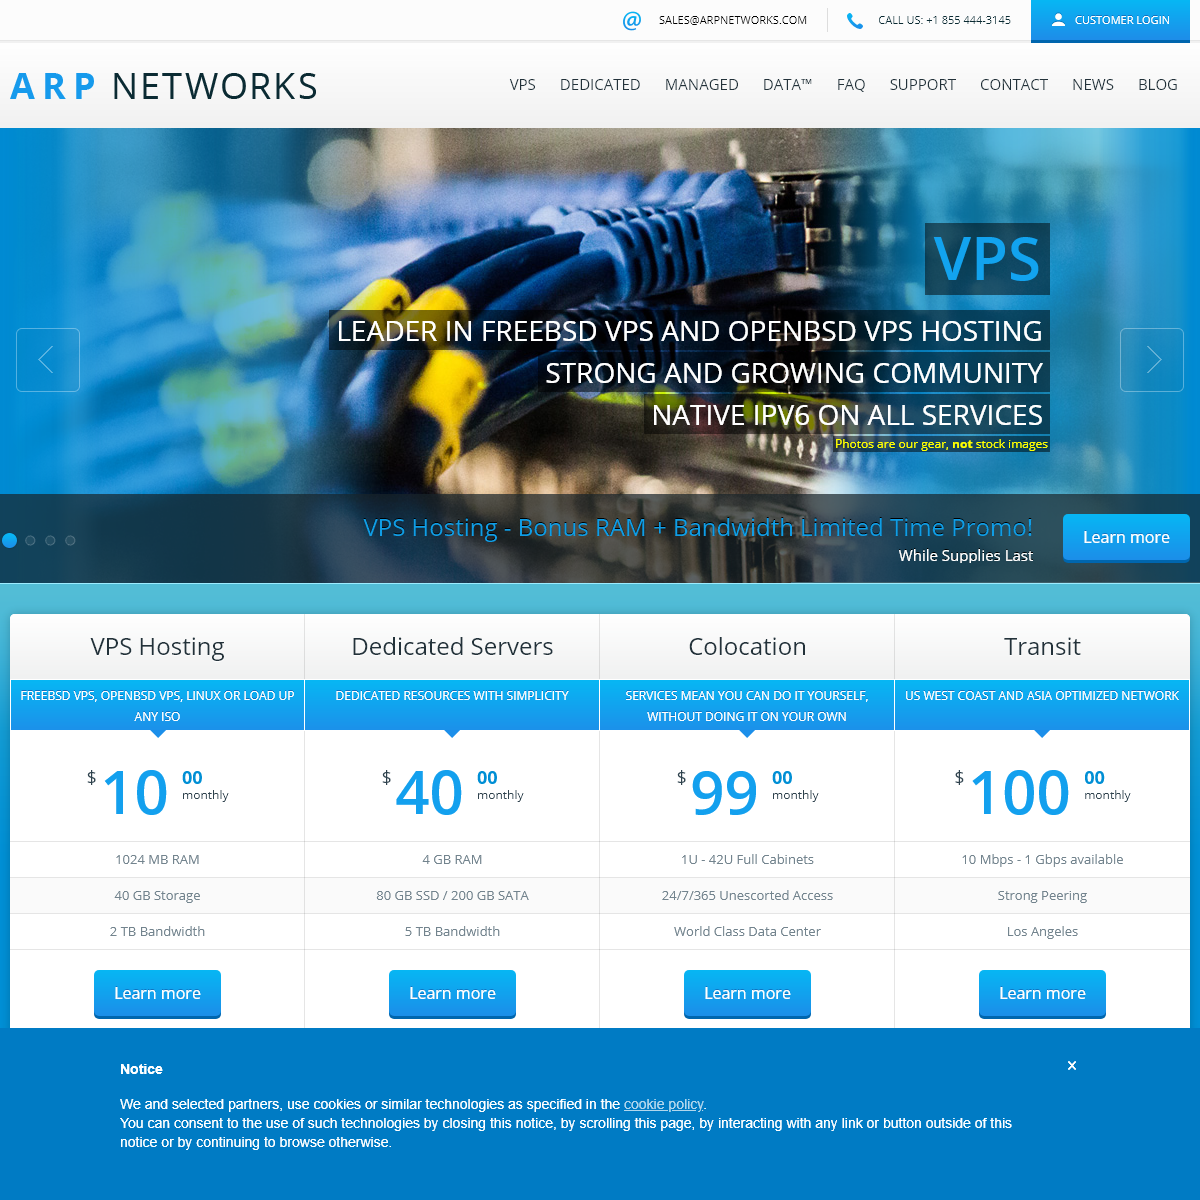 FreeBSD VPS, Dedicated Servers, Colocation - ARP Networks